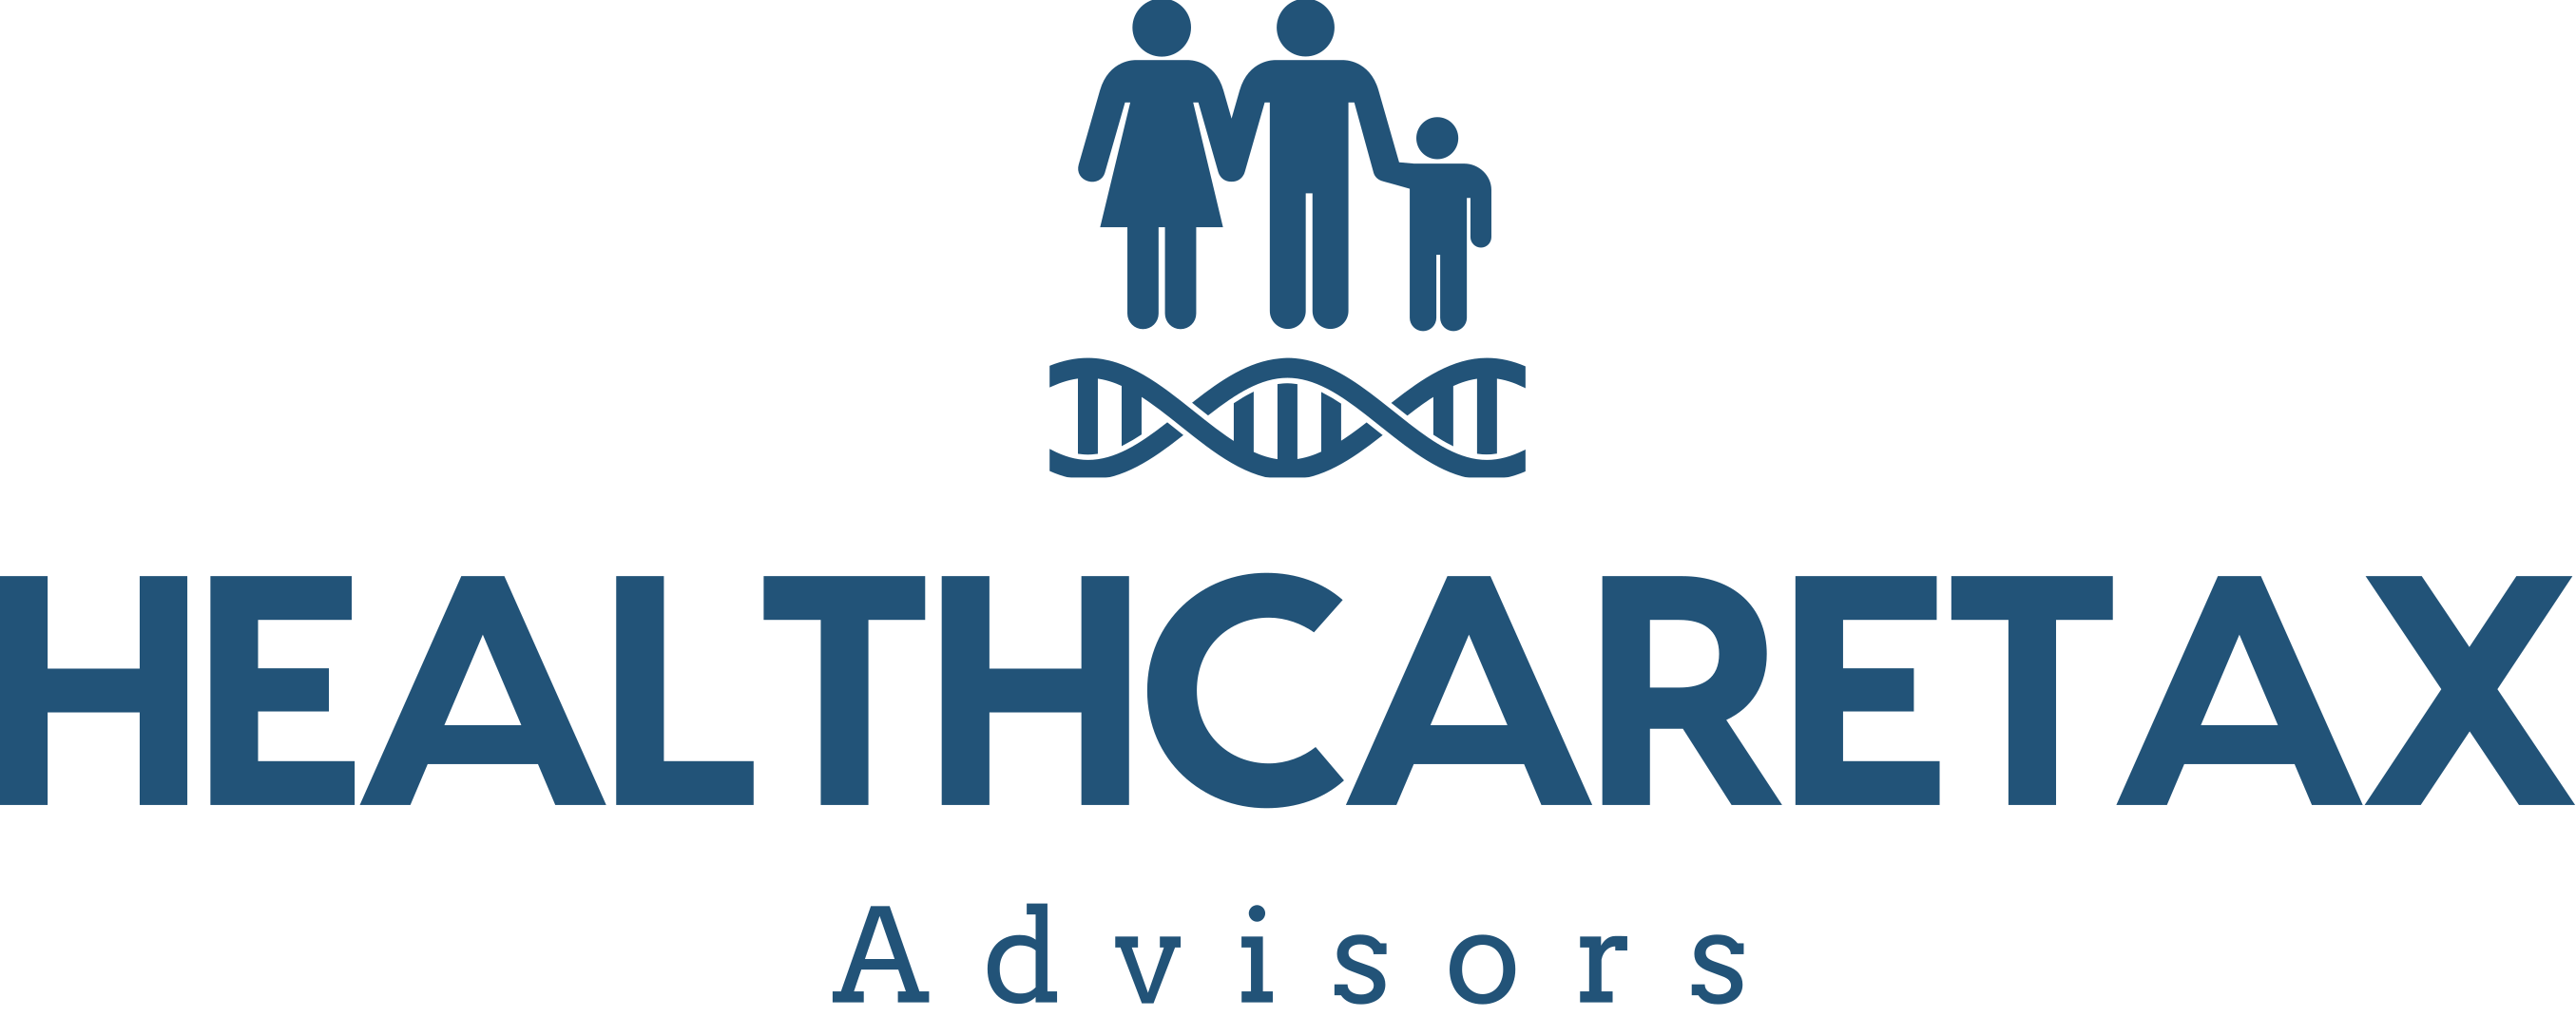 HealthcareTax Advisors